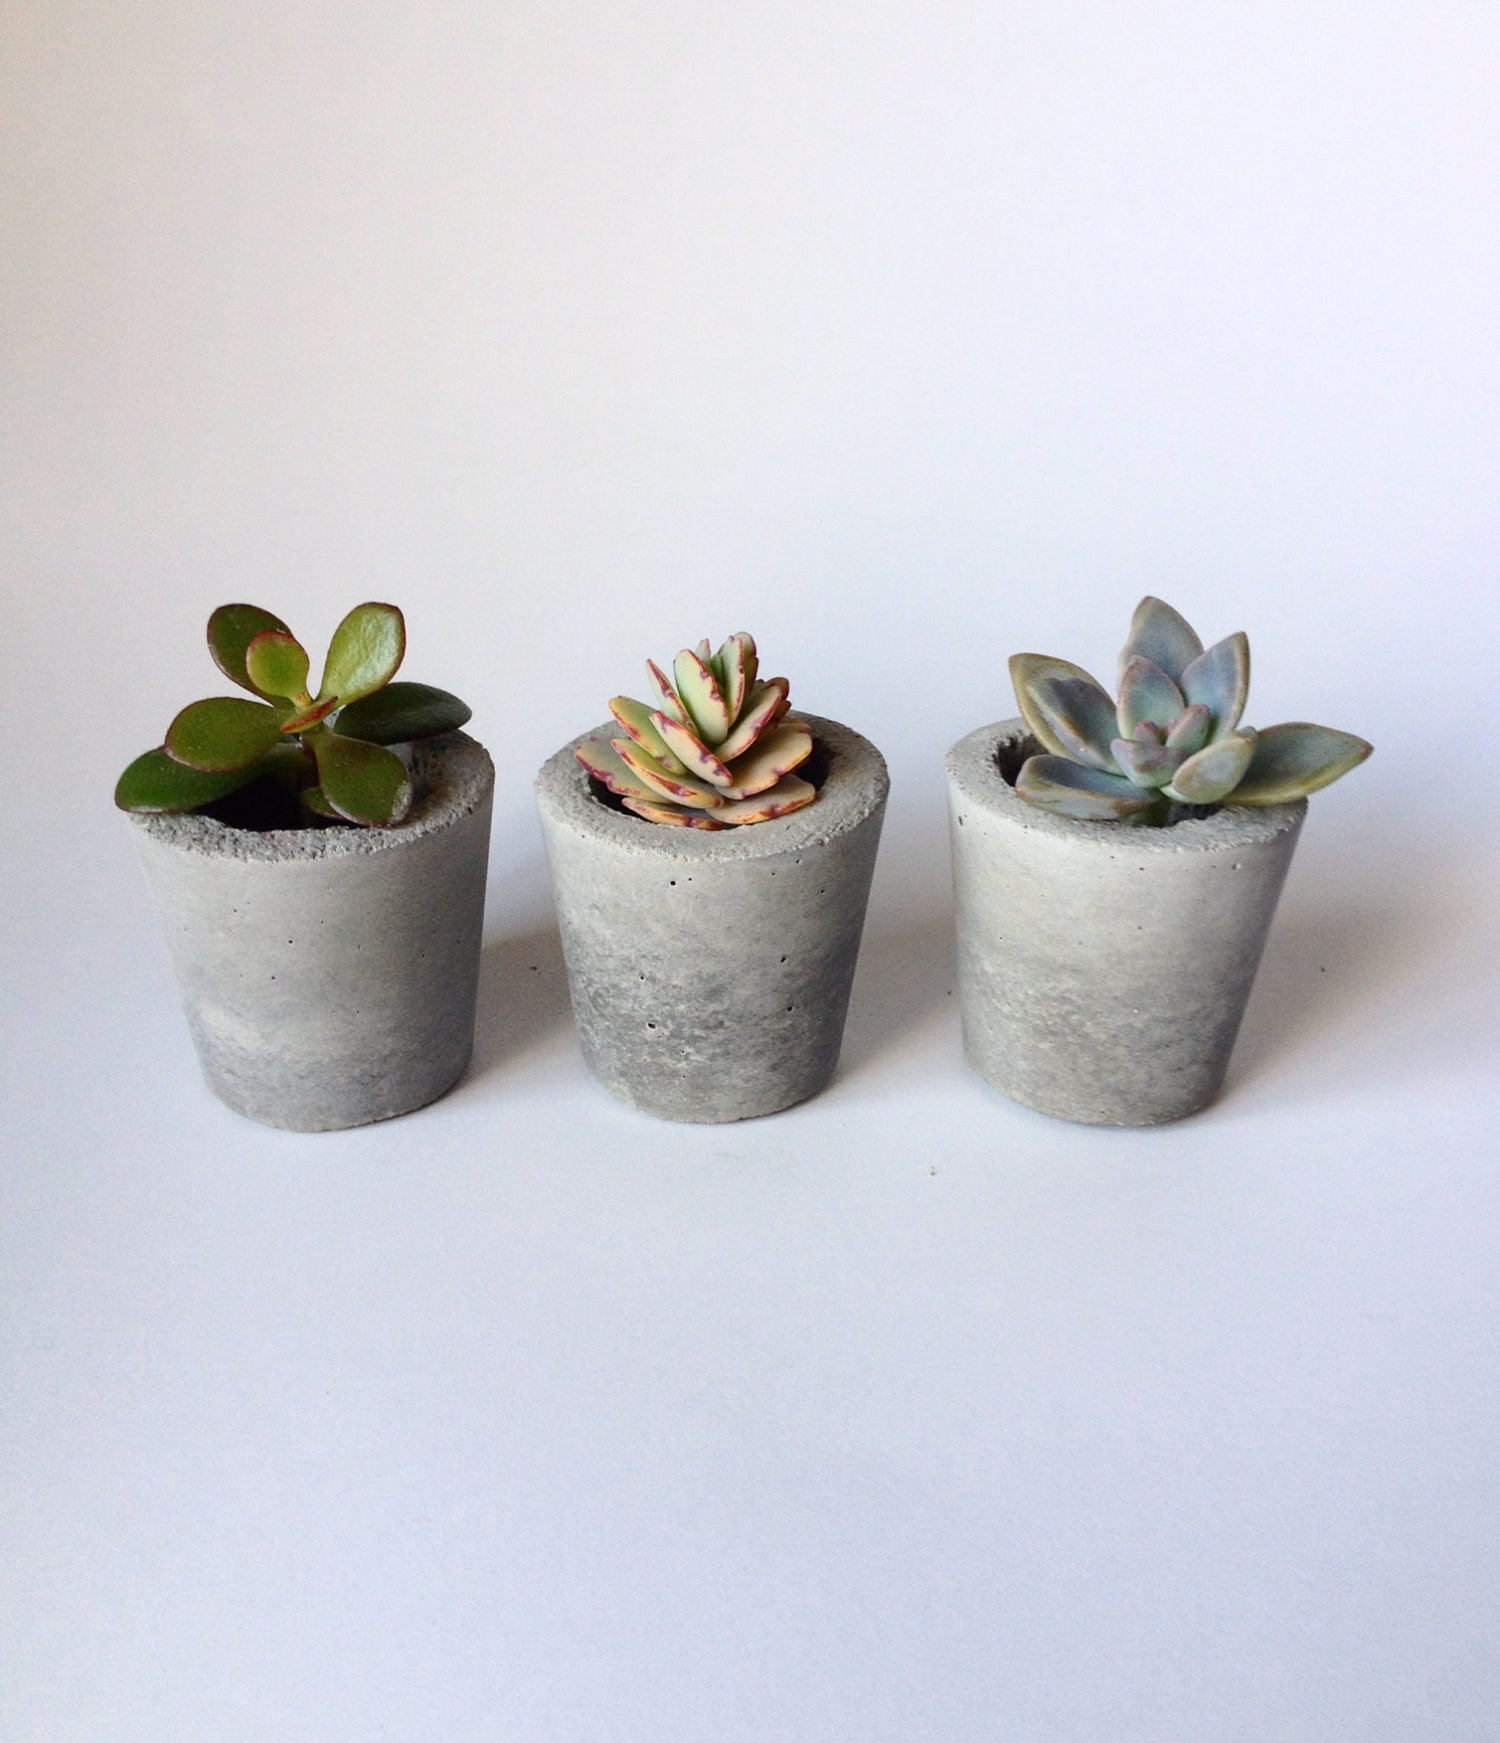 20 Reasons Why Succulents Are Awesome!